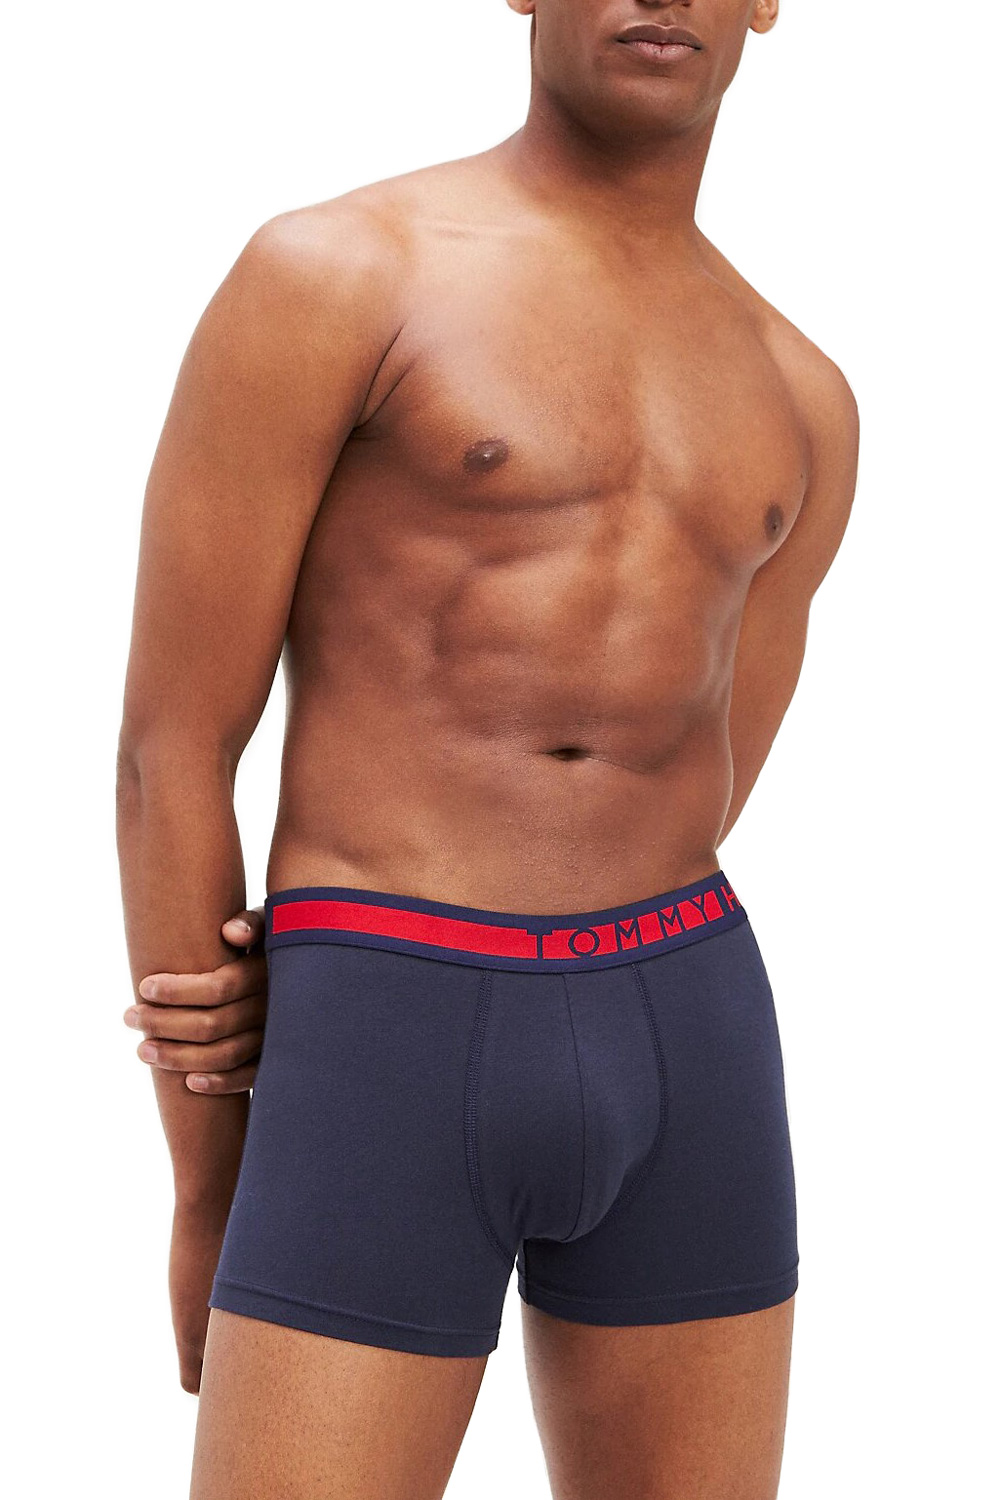 Tommy Hilfiger blue 3 pack boxer shorts 3P Trunk